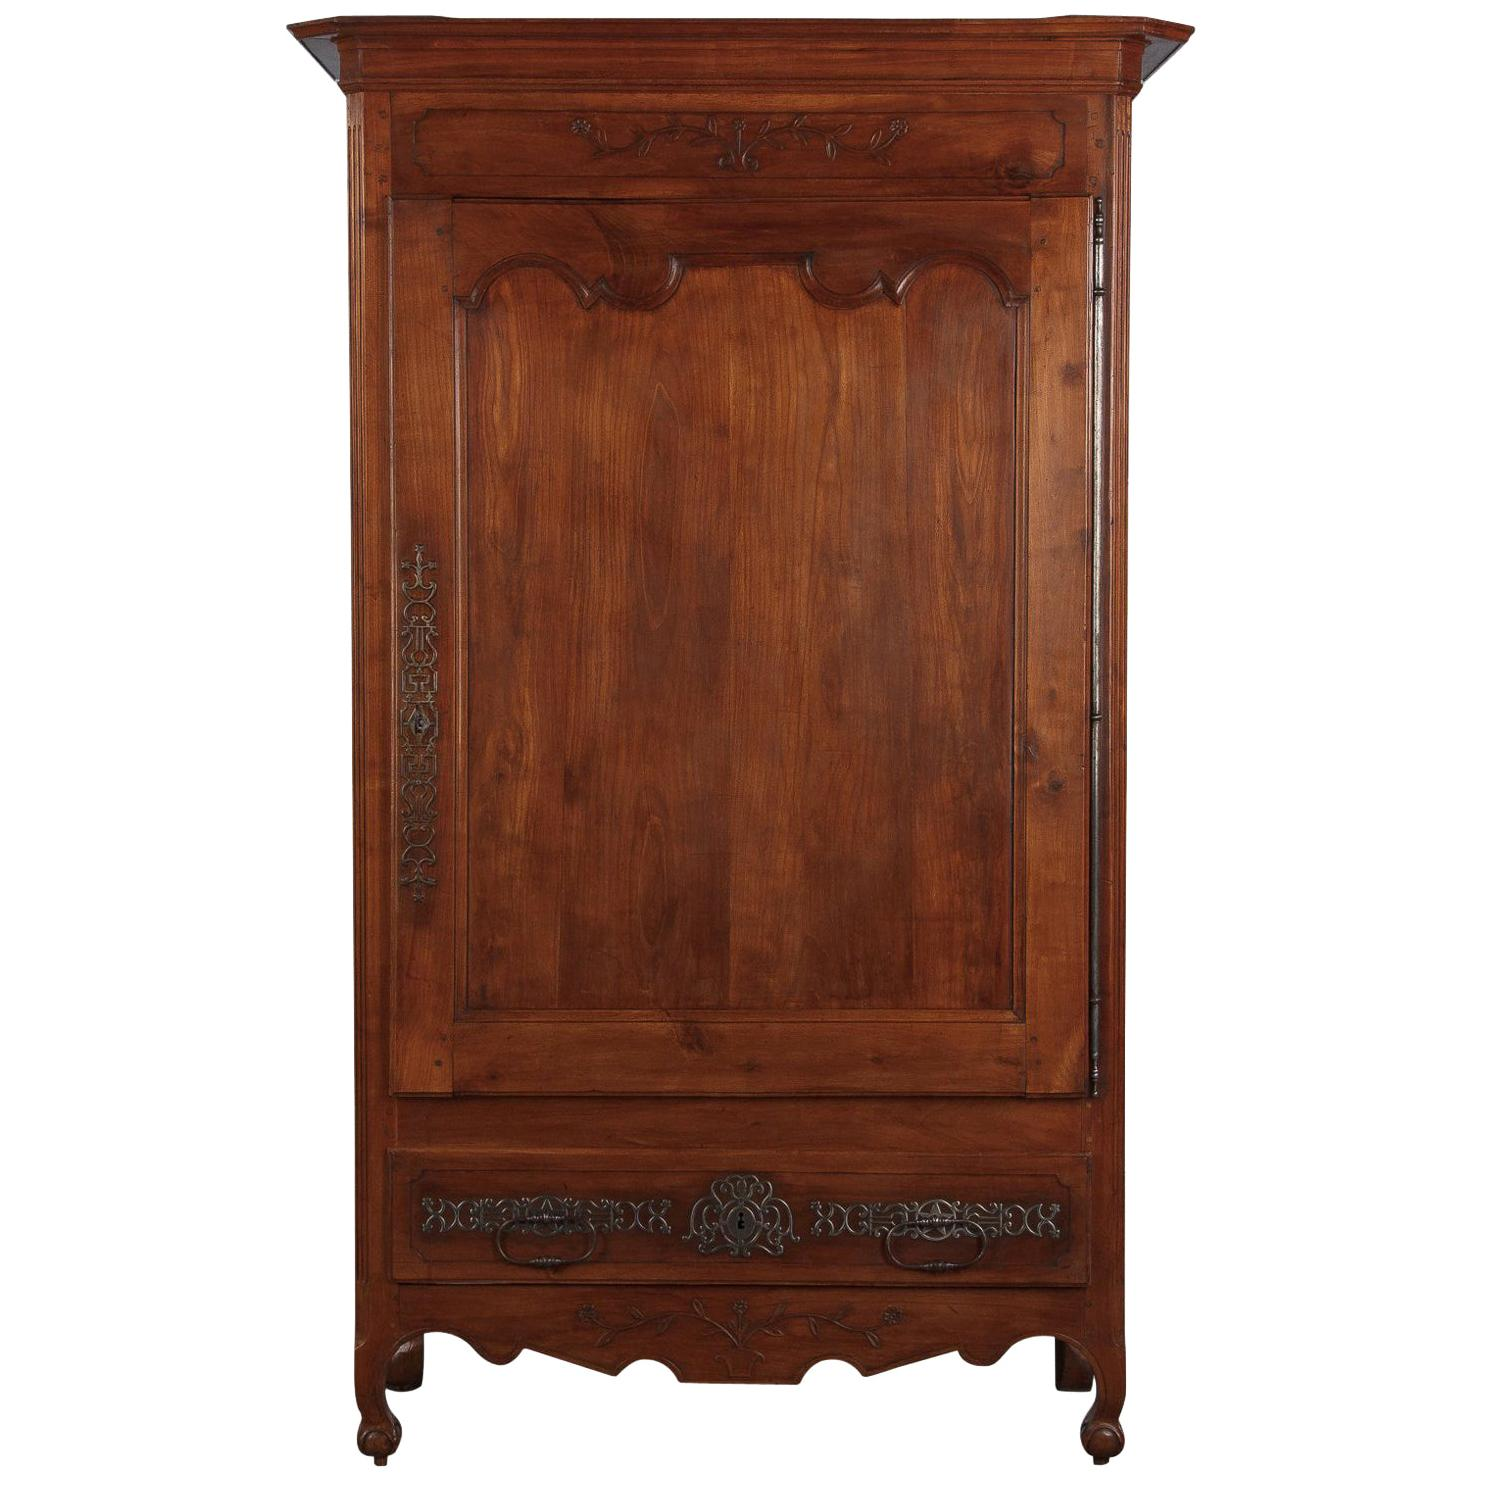 French Louis XV Cherrywood Bonnetiere Armoire, 18th Century